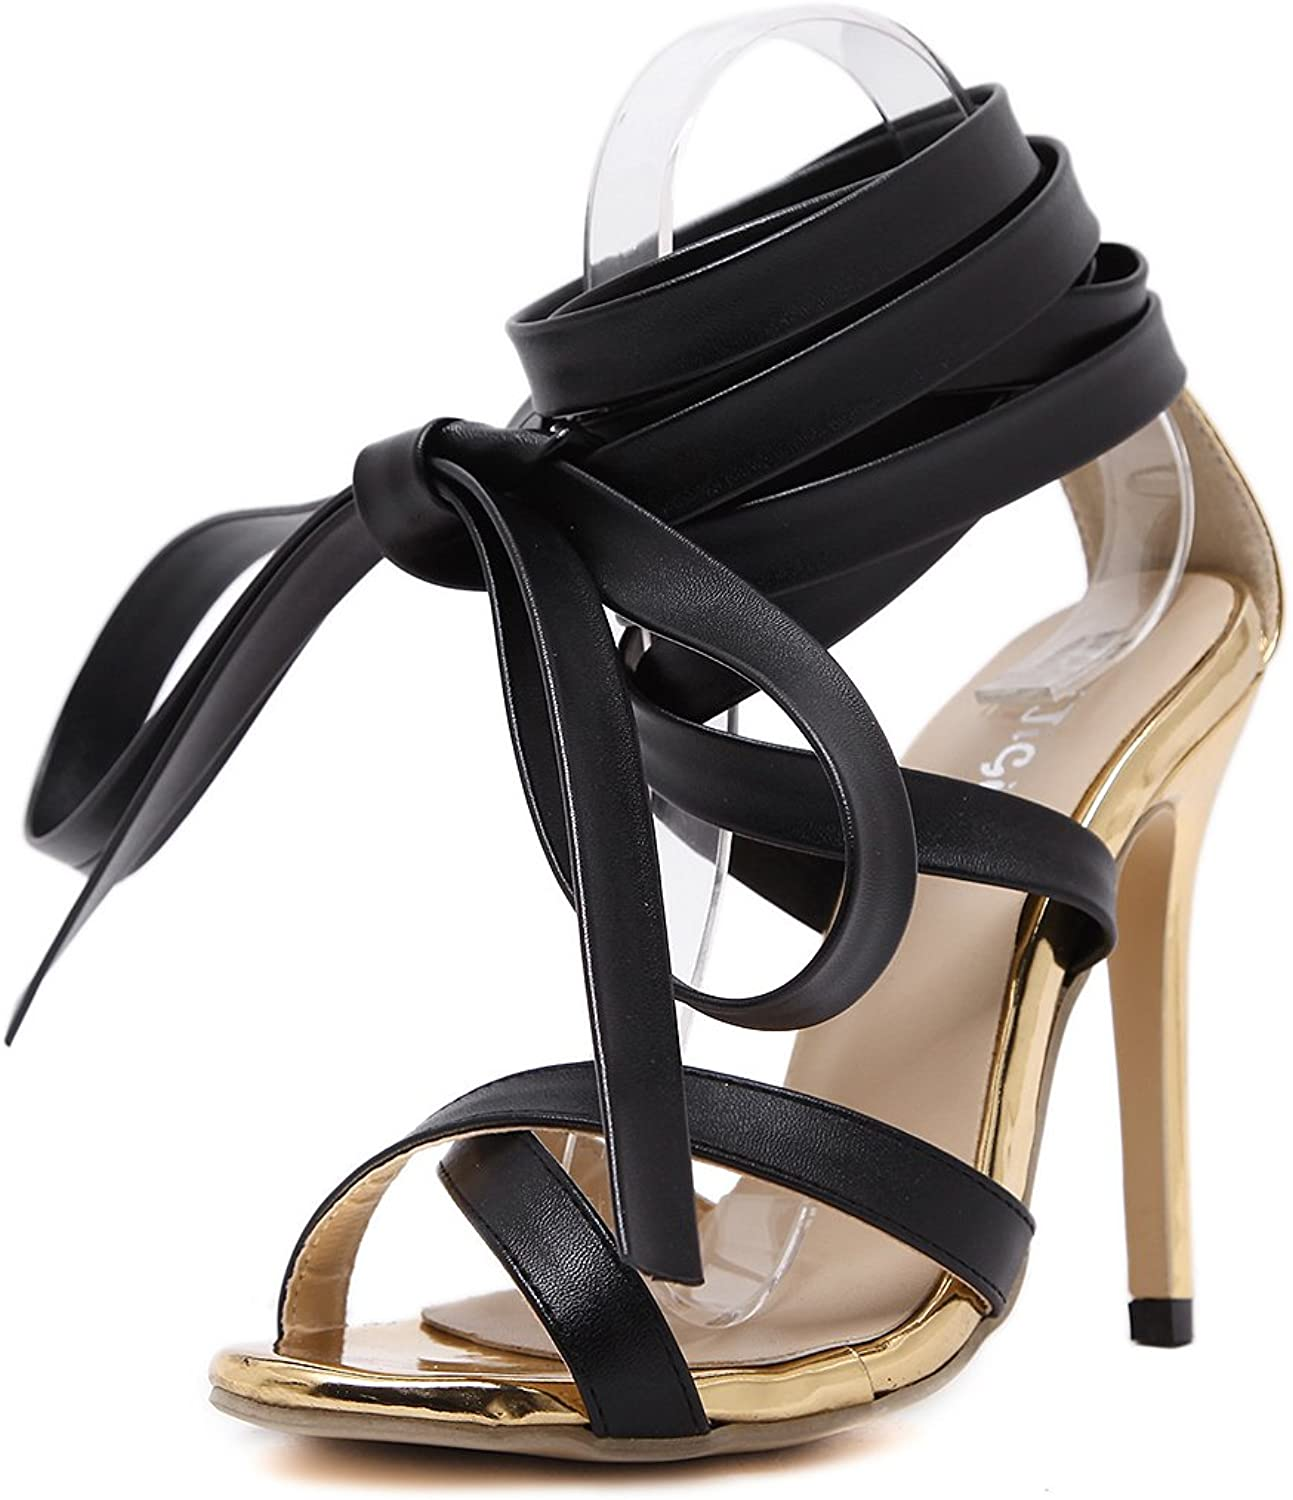 Pit4tk Women Sandals High Heels shoes Summer Peep Toe Ankle Strap Woman Sandals Thick Heel Party shoes